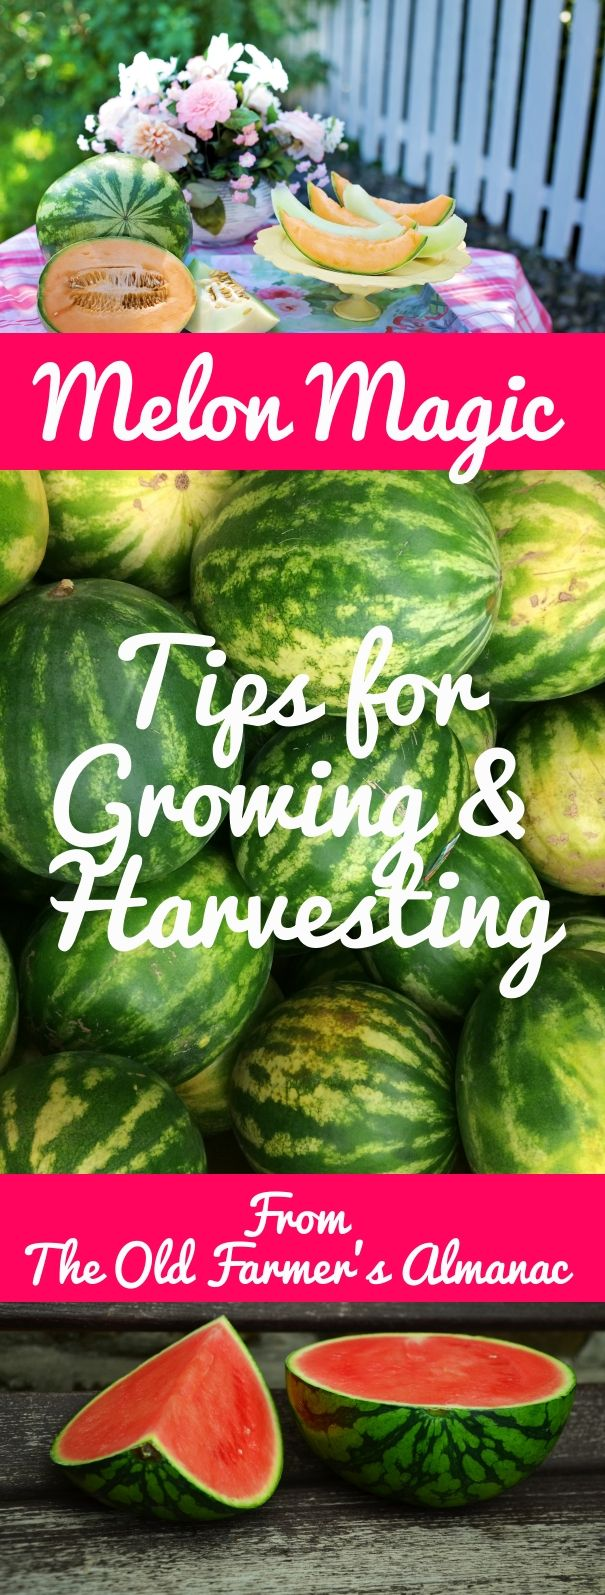 17 Best 1000 images about Gardening Tips on Pinterest Farmers almanac